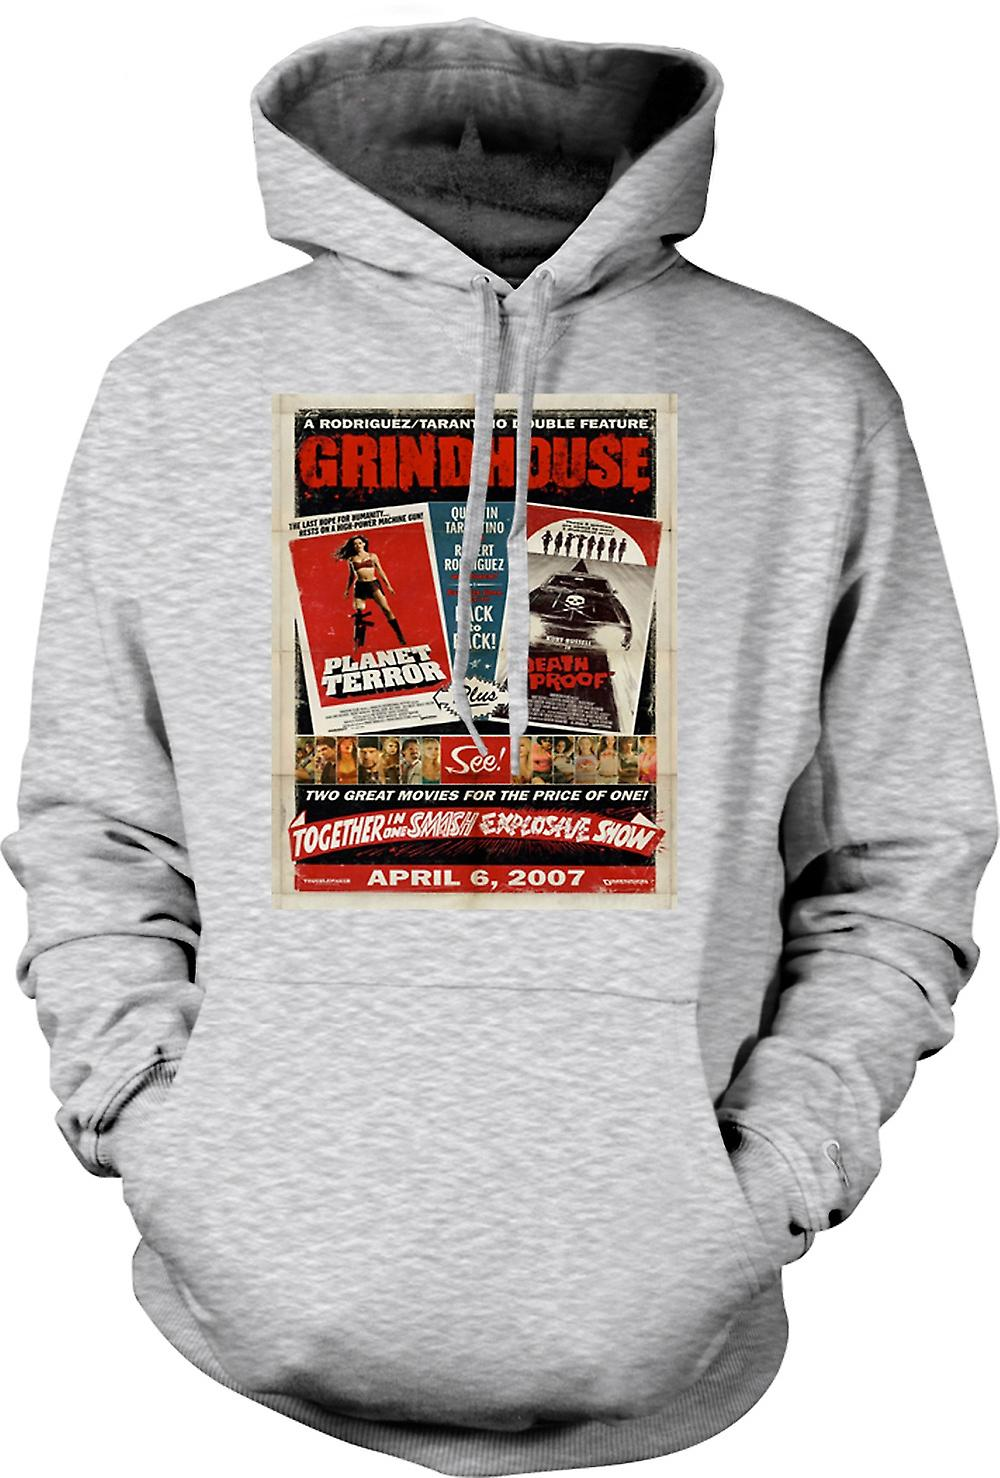 Mens Hoodie - Grindhouse-Planet Terror / Death Proof